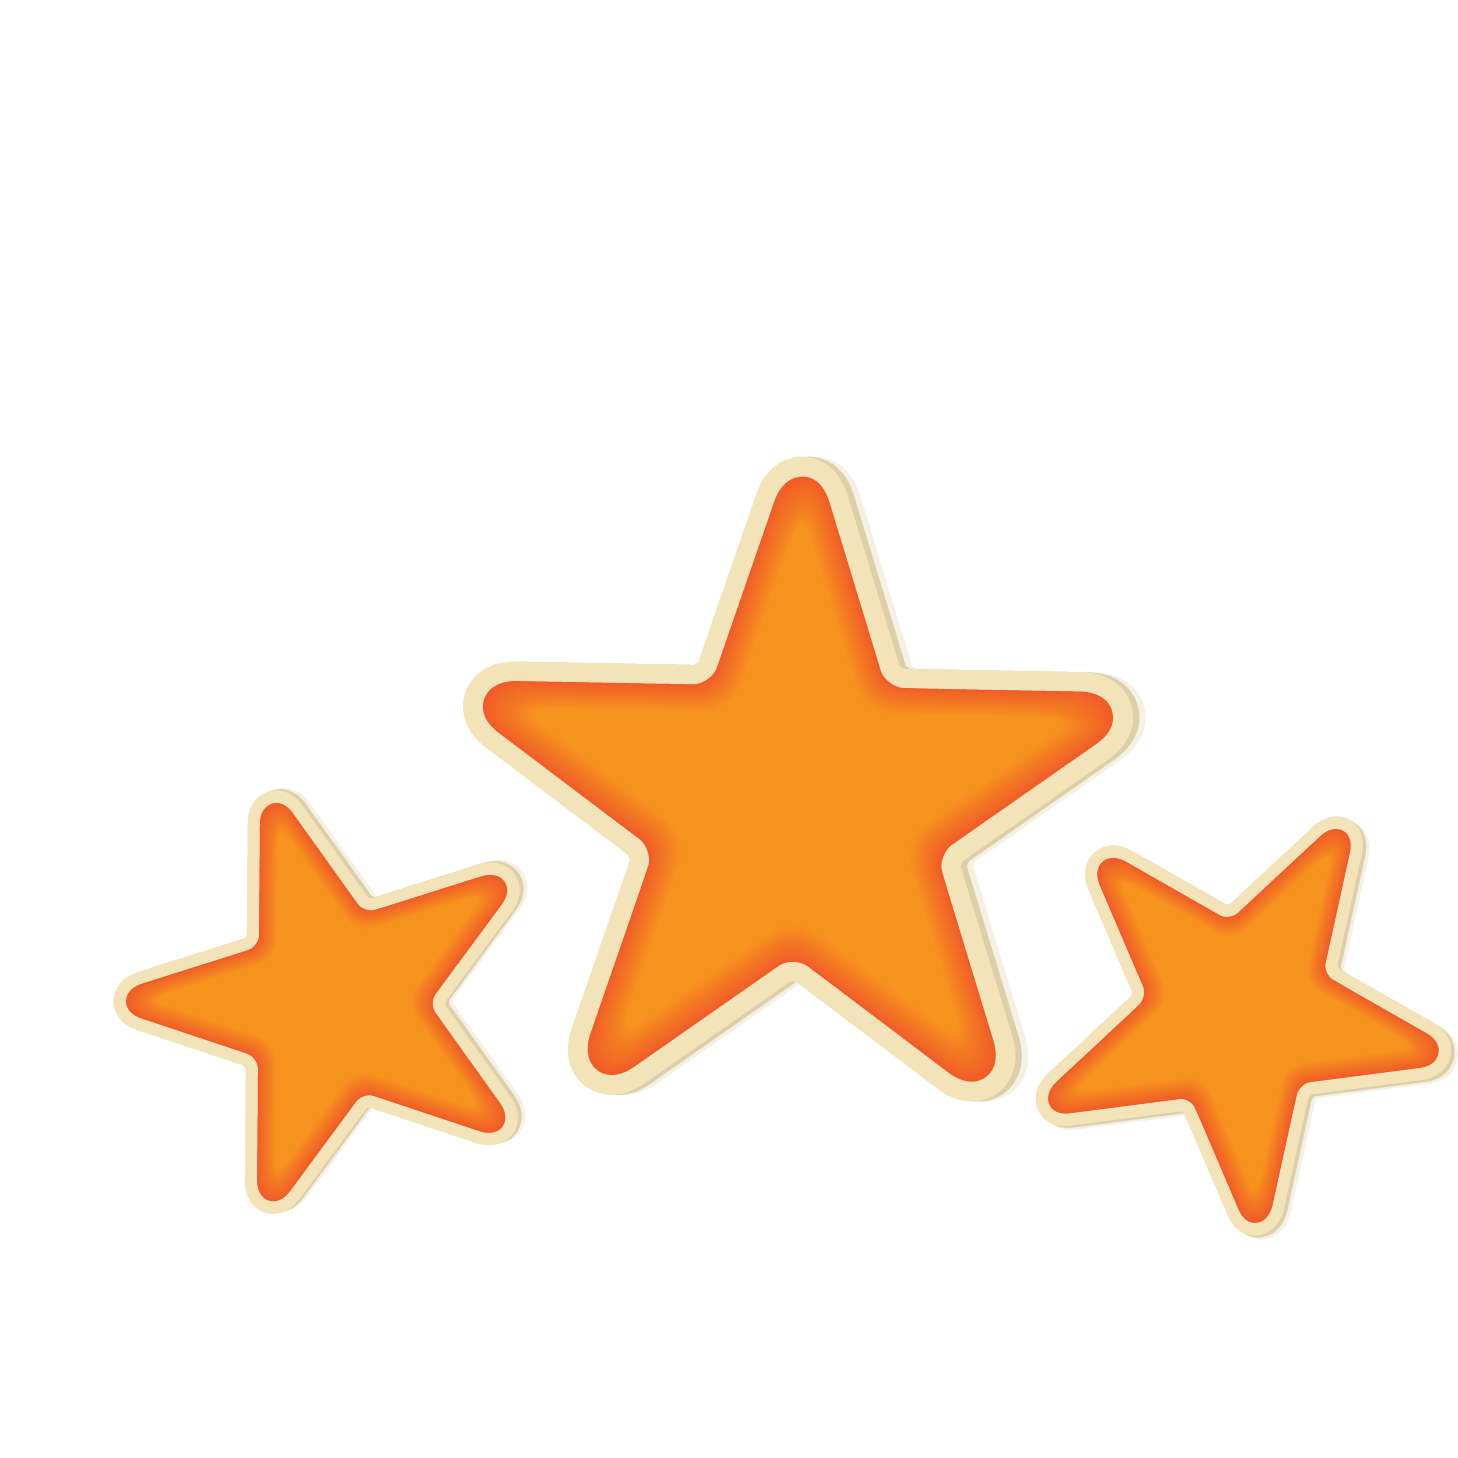 Outer space transprent png. Star clip art star cluster